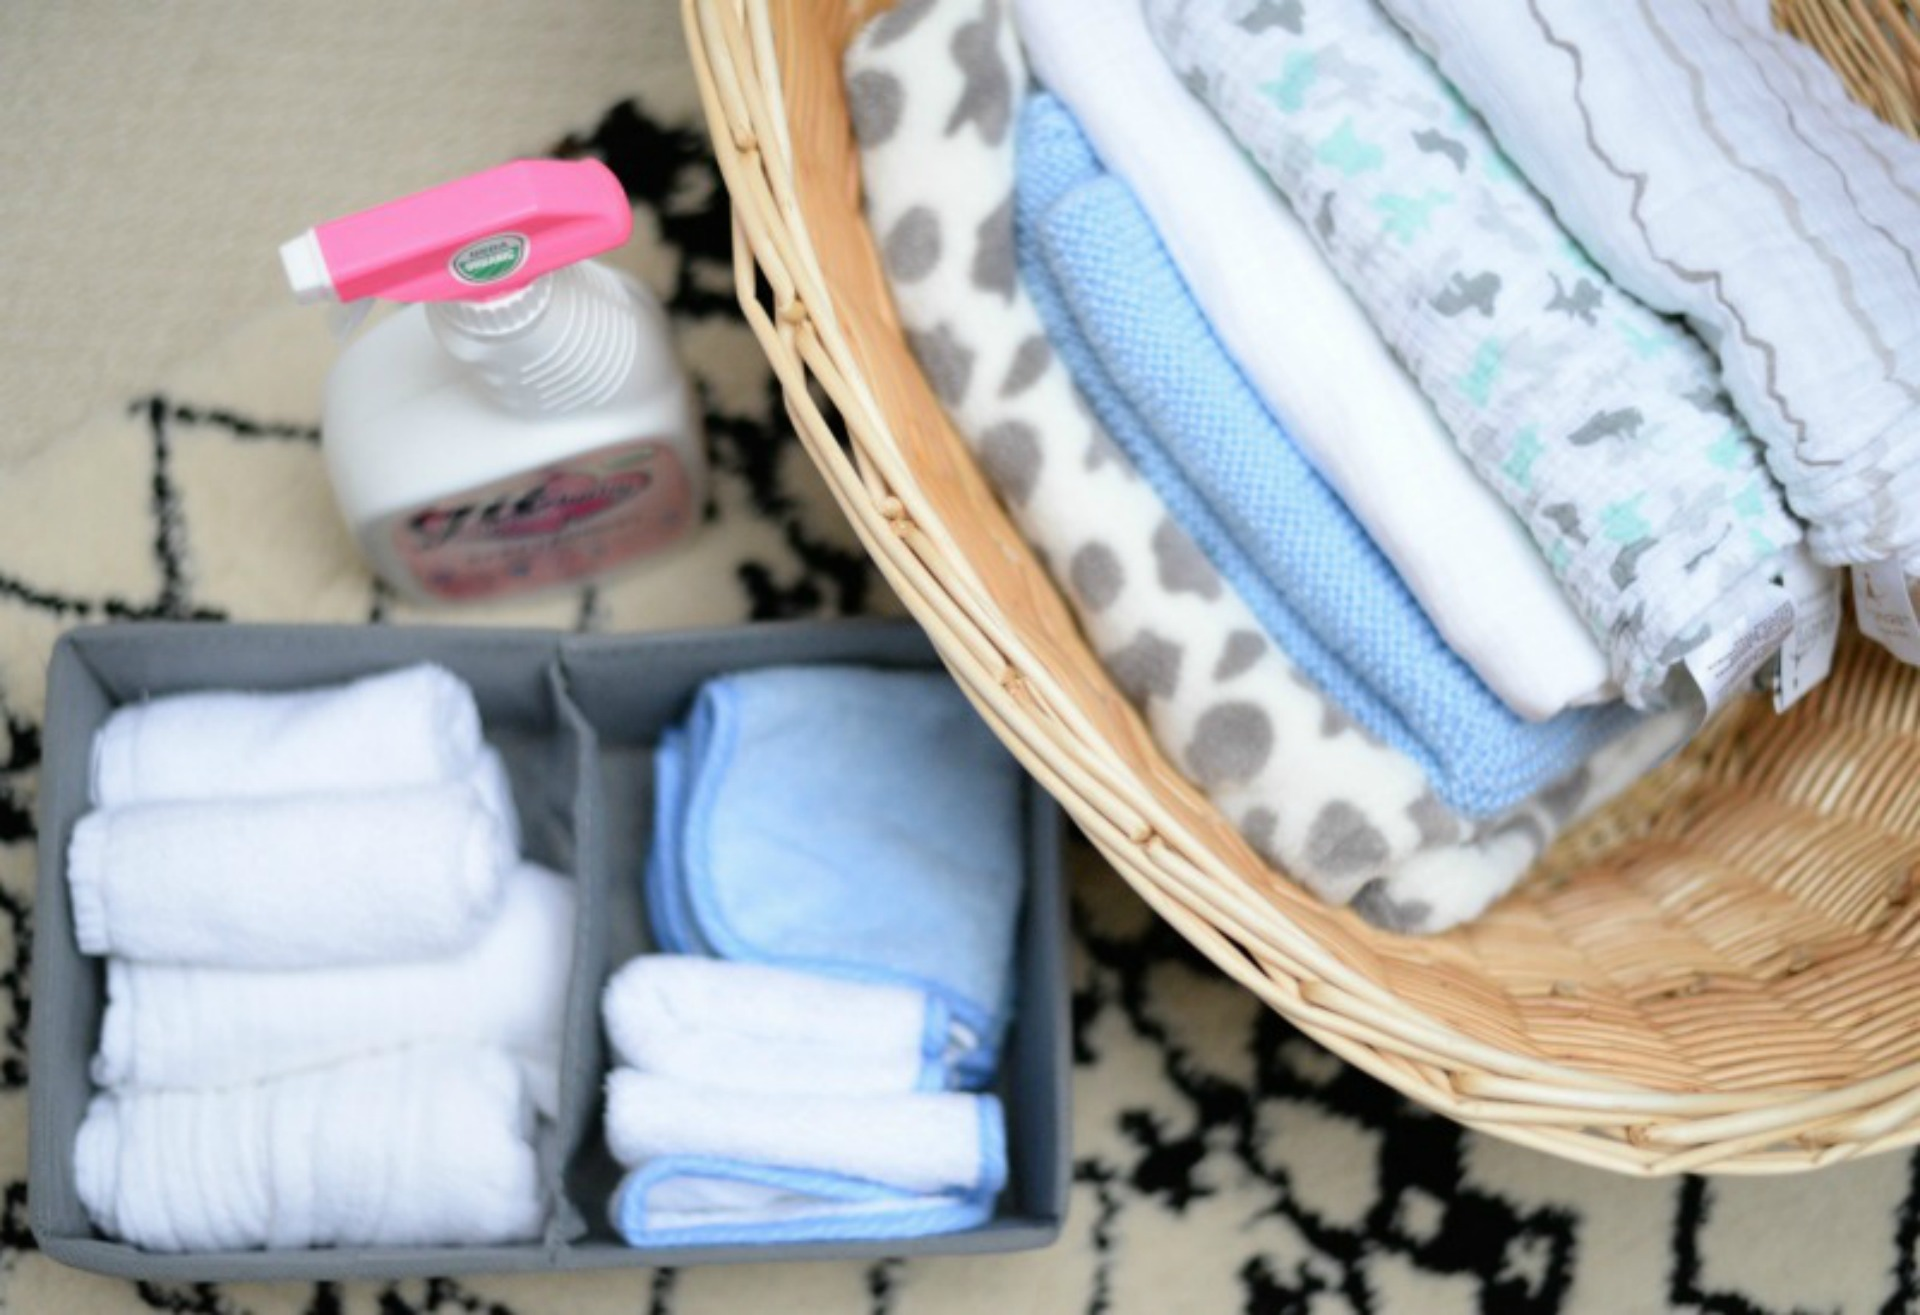 348301d9e 5 Tips from a New Mom on How to Organize Baby Clothes - Life Storage ...